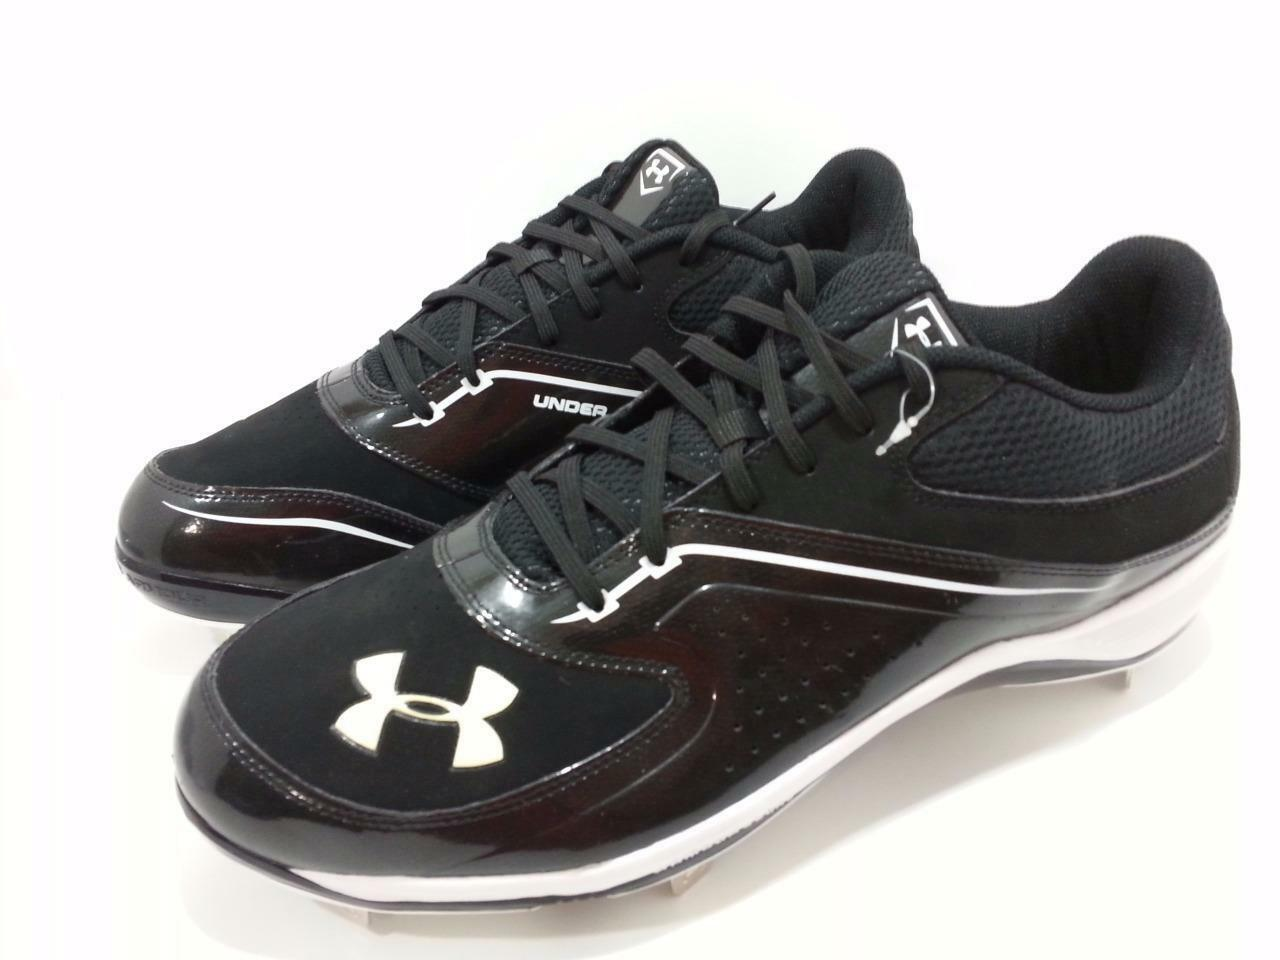 Under Armour Ignite Low ST Men's size Baseball Cleats 123809701 Black/White size Men's 14 fdaf4c